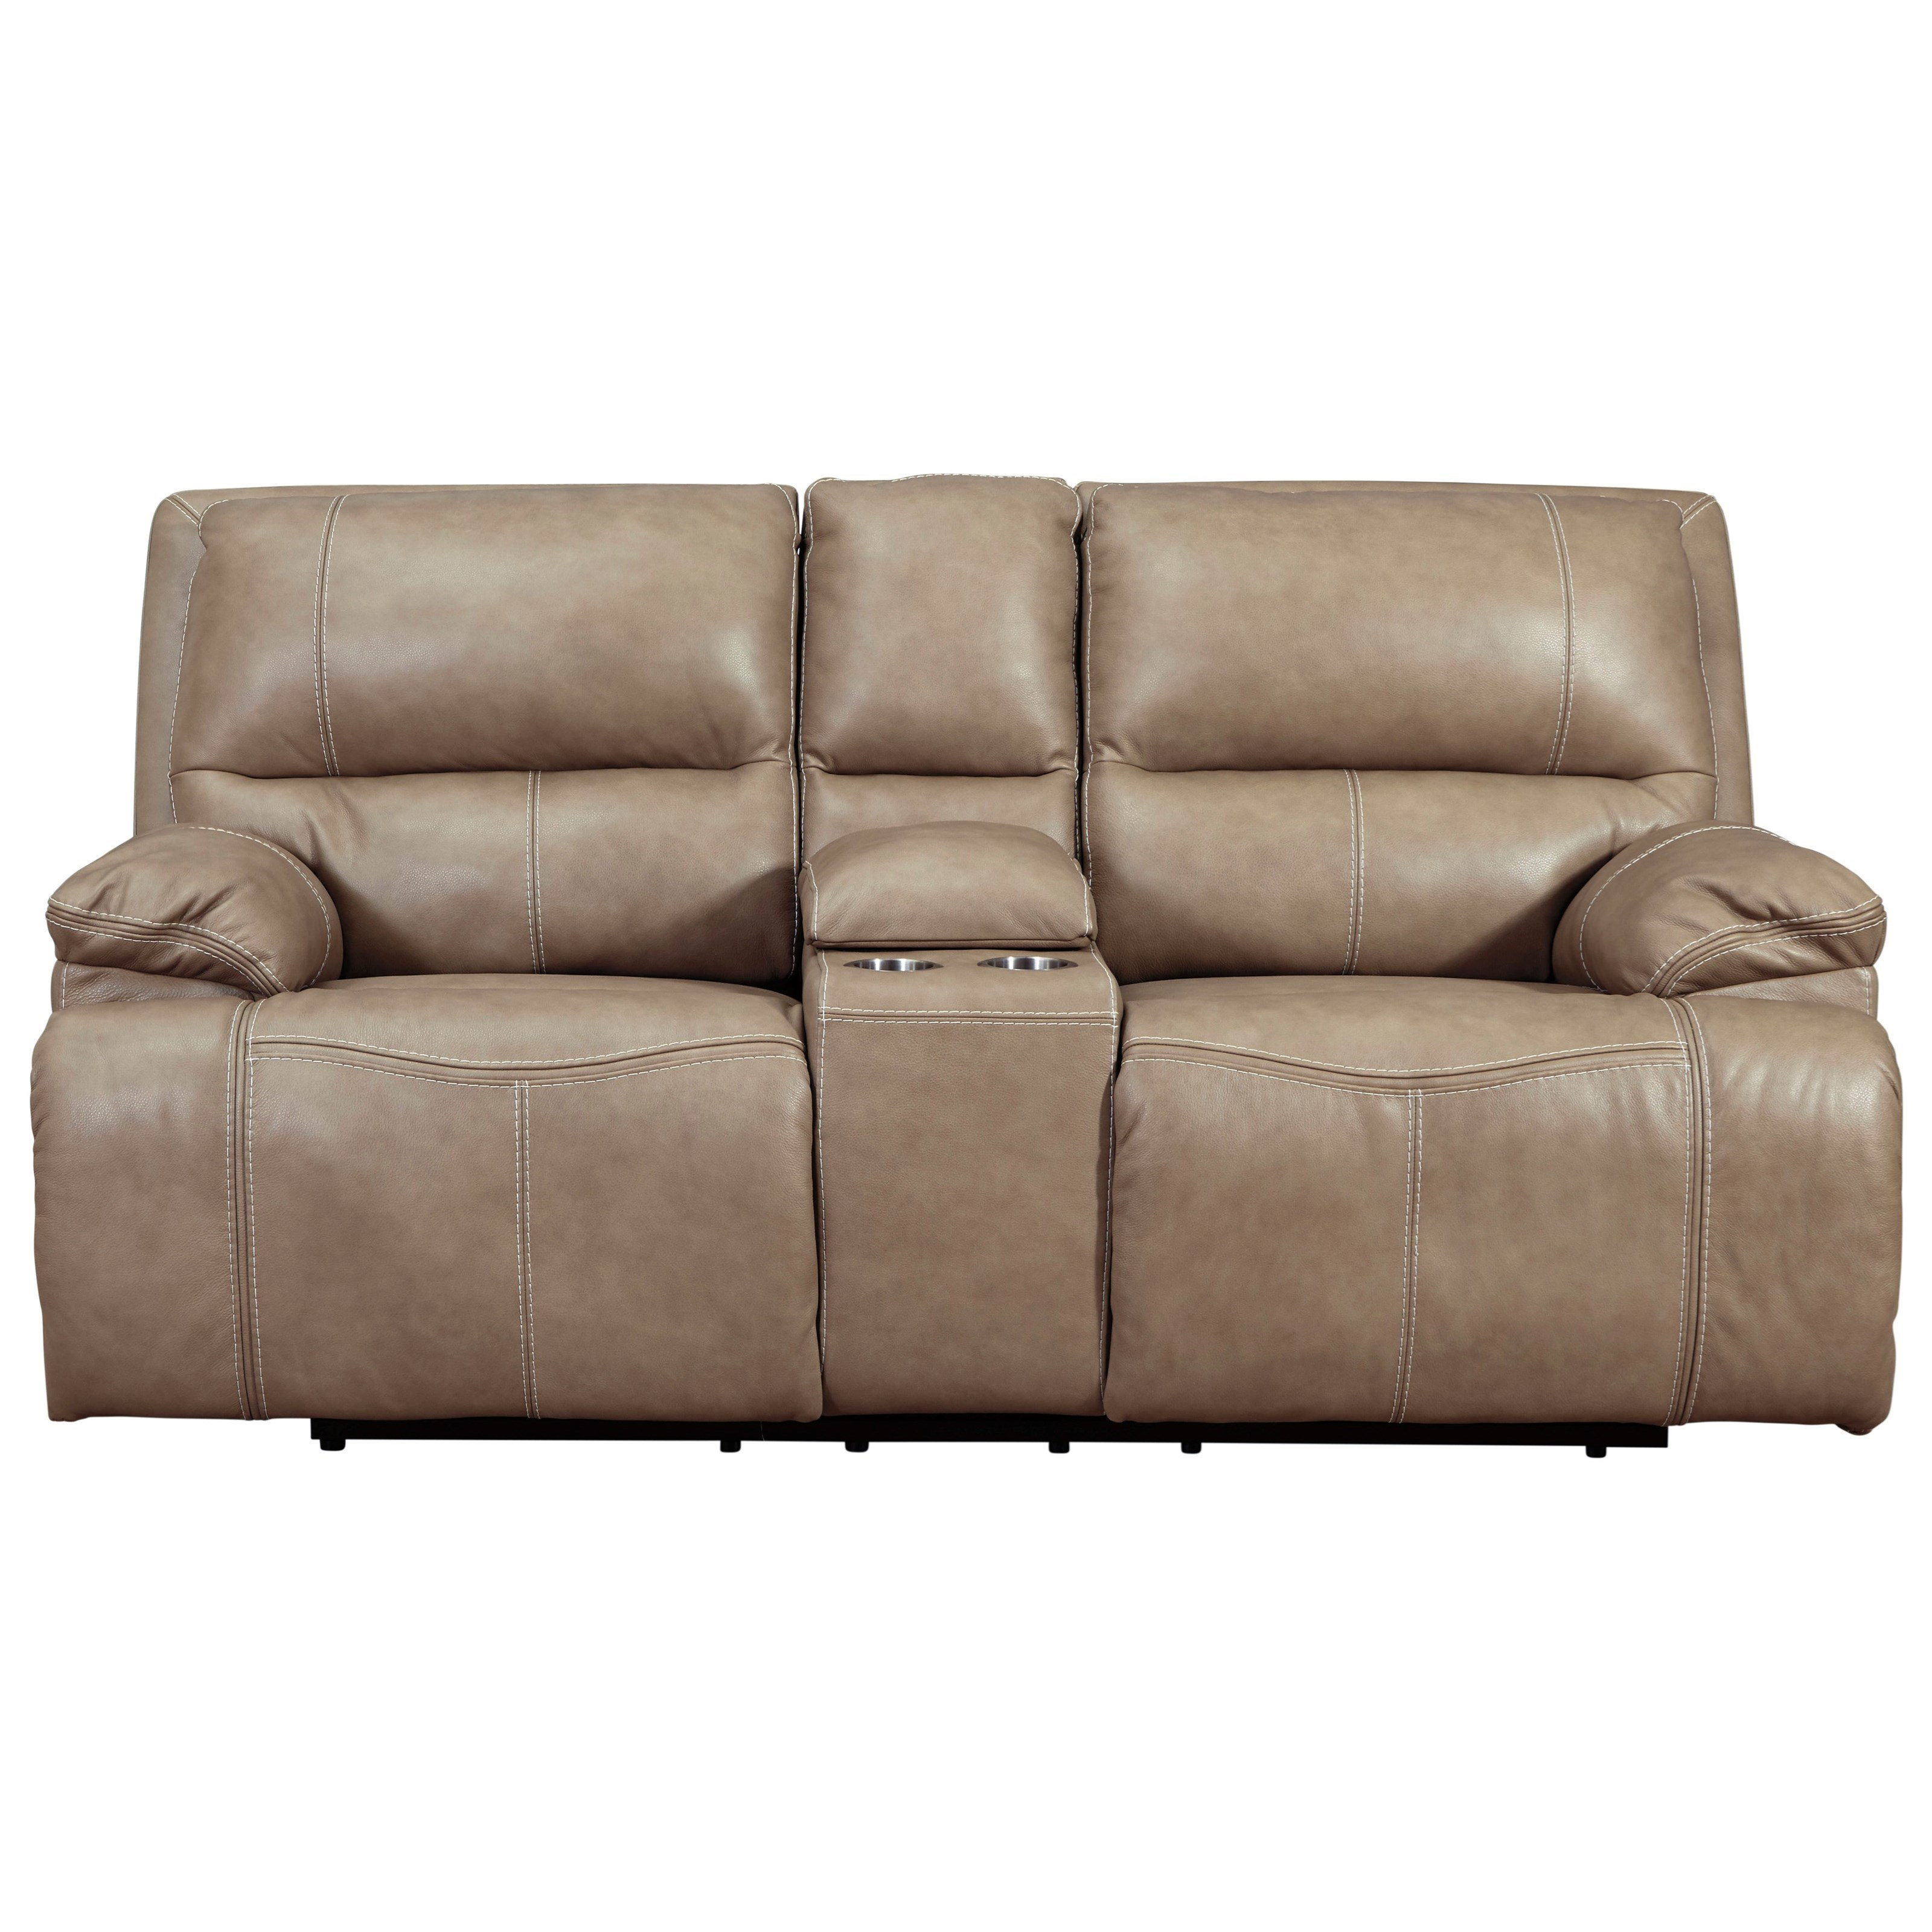 Ricmen Power Reclining Loveseat by Signature Design by Ashley at HomeWorld Furniture